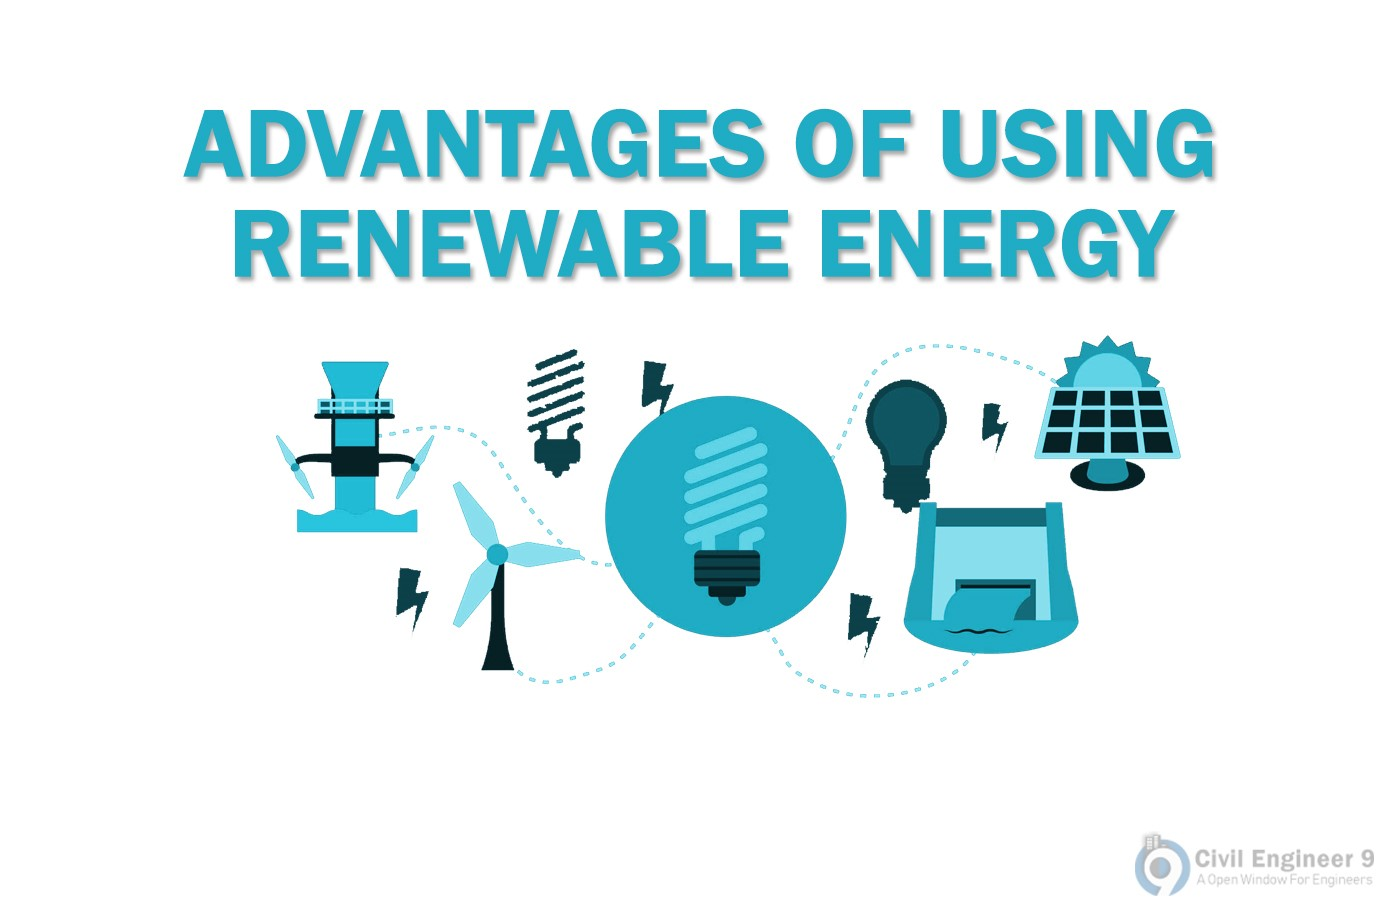 Using Renewable energy